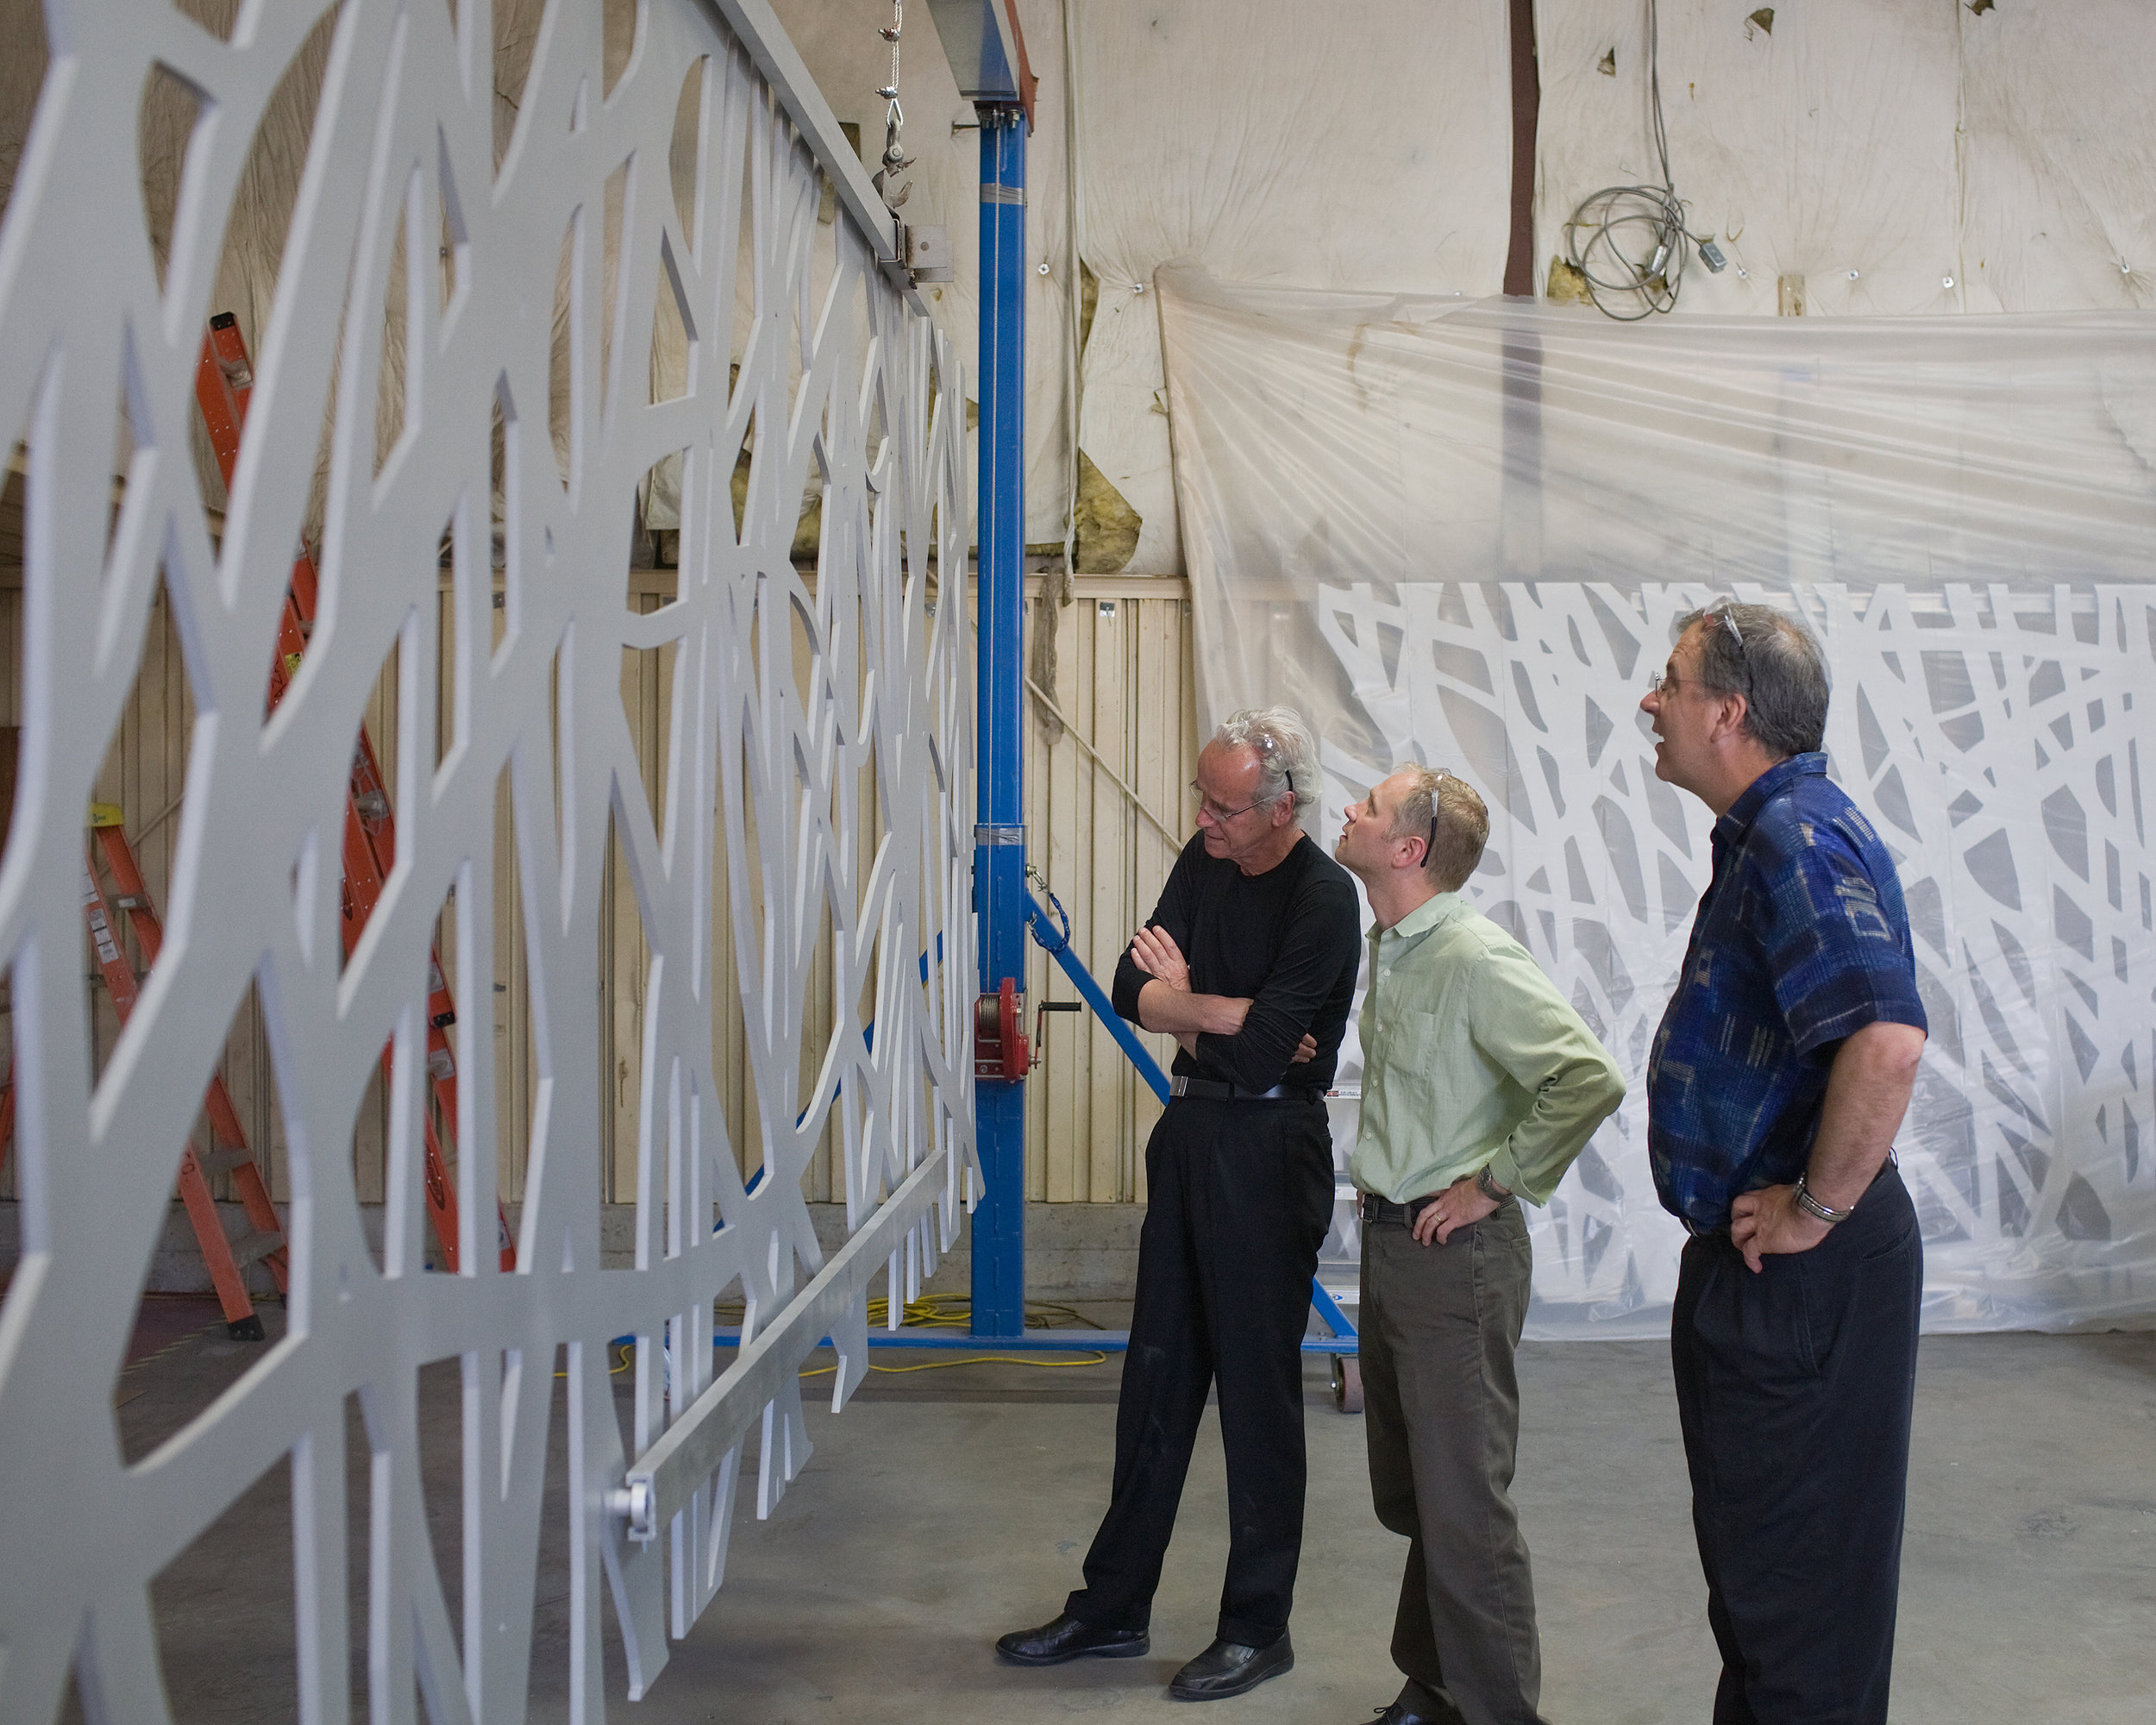 Artist Jan Hendrik inspects his  Patio de las Jacarandas  mock-up with Paul Martin & Bill Zahner